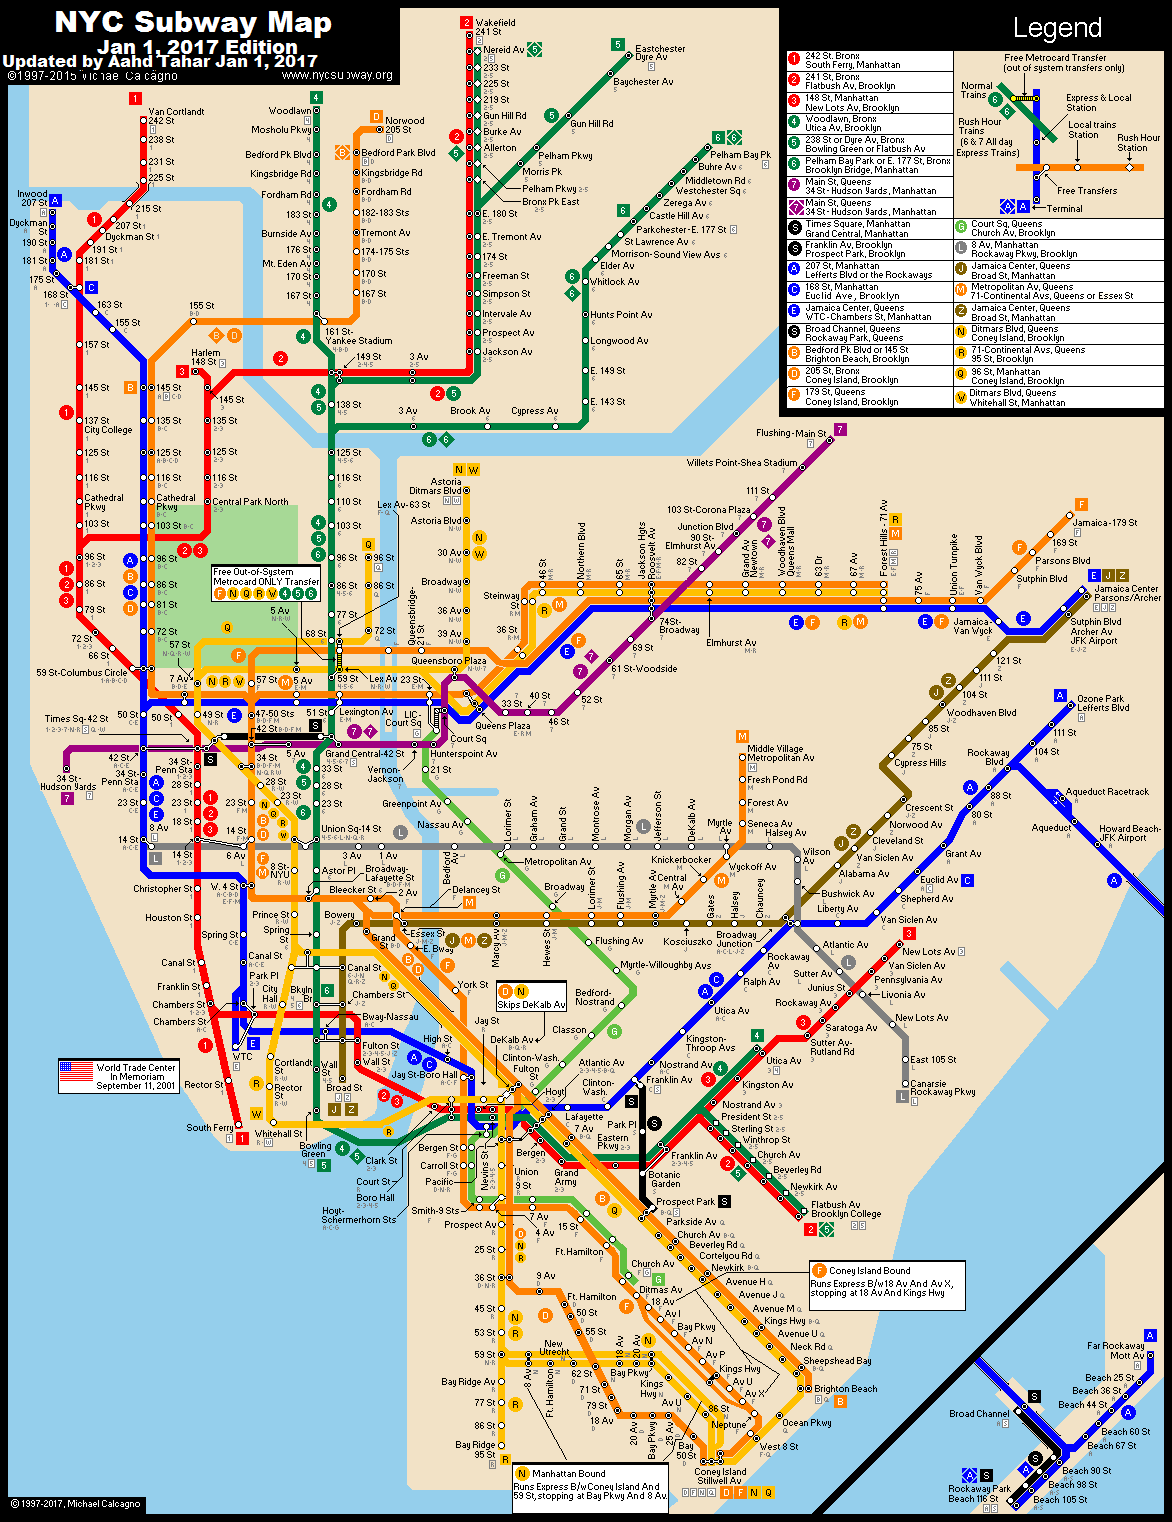 Wwwnycsubwayorg New York City Subway Route Map By Michael Calcagno - New york map